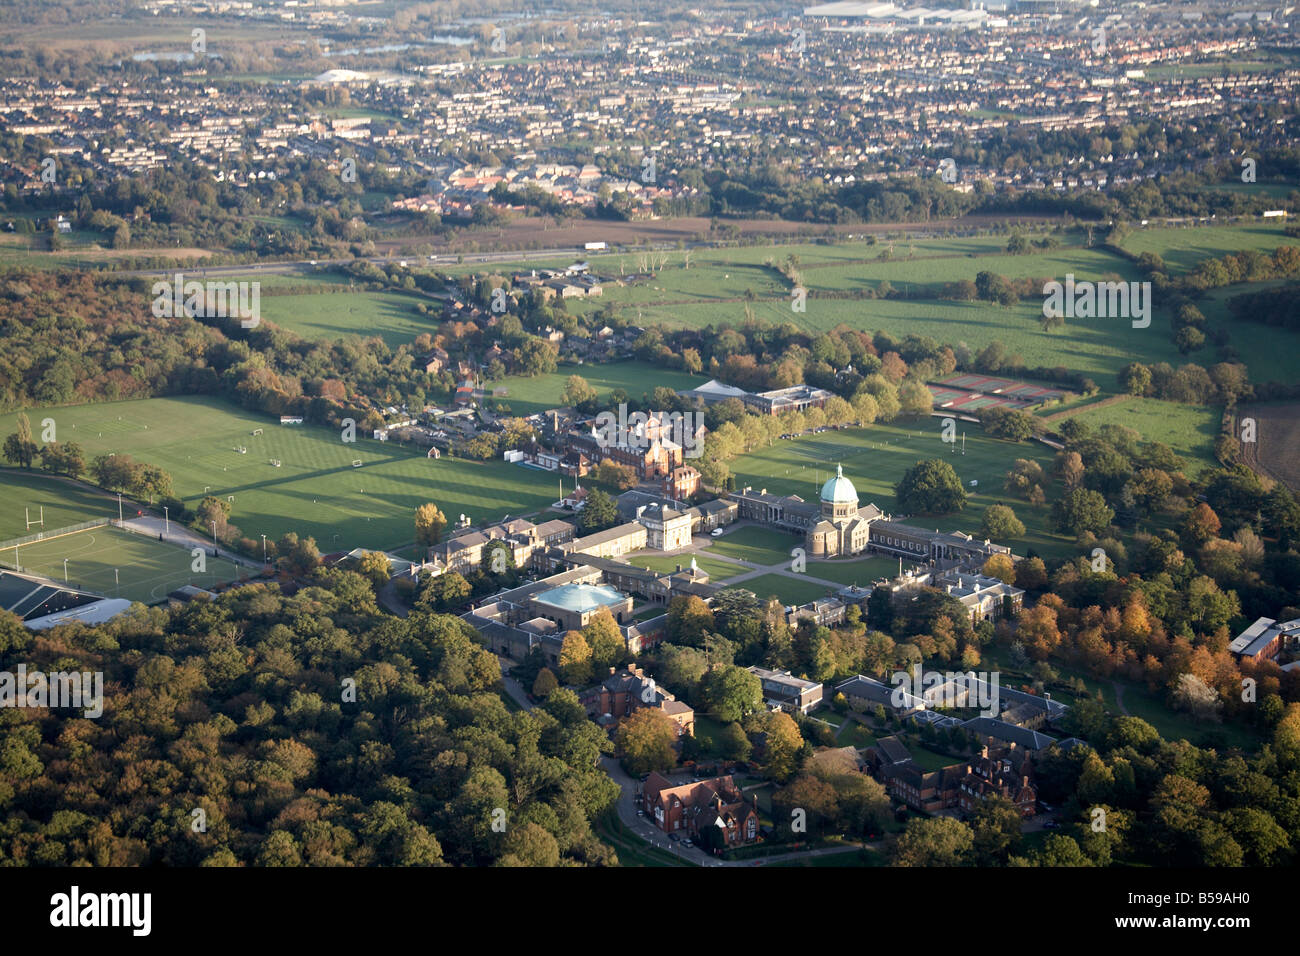 Aerial view south east of Haileybury College playing fields tennis courts A10 road suburban houses Hertfordshire - Stock Image